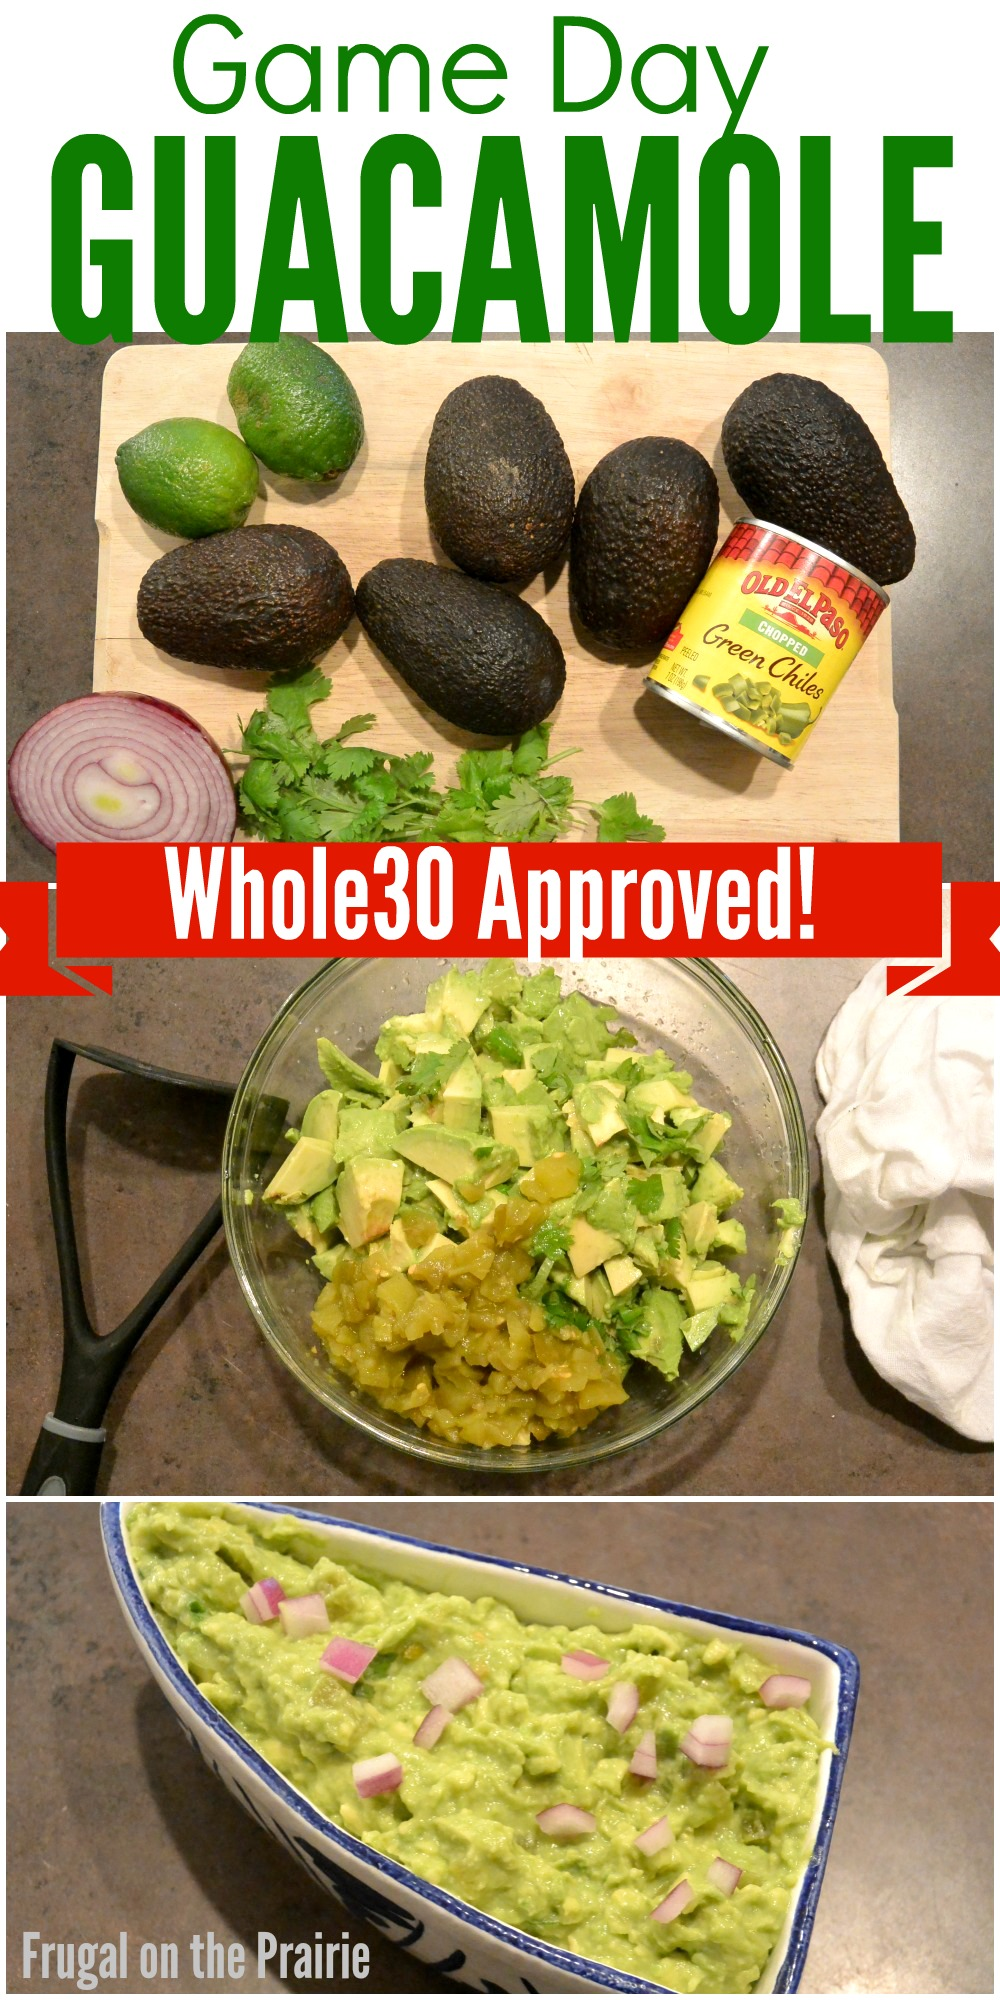 Ready for Game Day while you're on the Whole30? Keep things yummy and compliant by whipping up this easy, one-step guacamole!